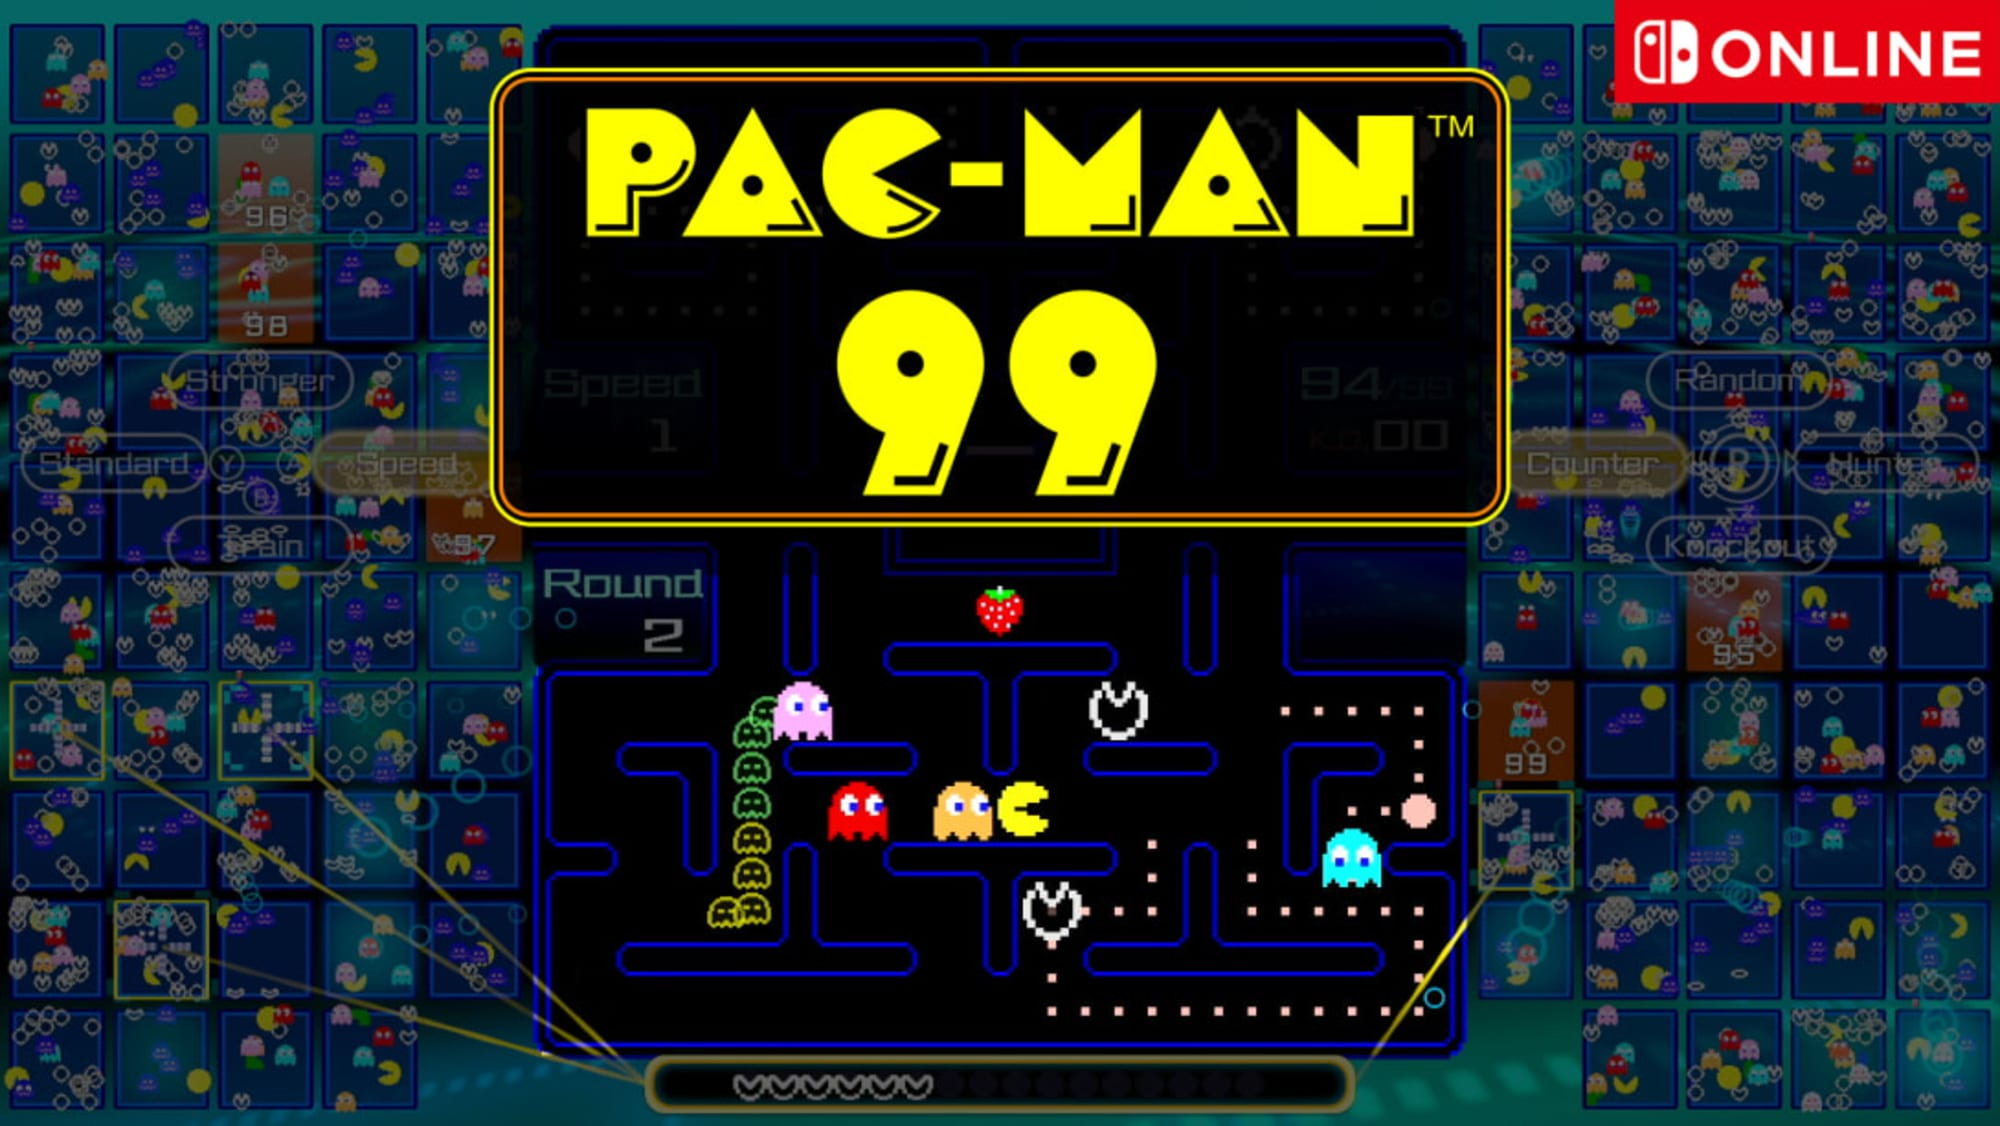 Pac-Man 99 is a fun but confusing nightmare